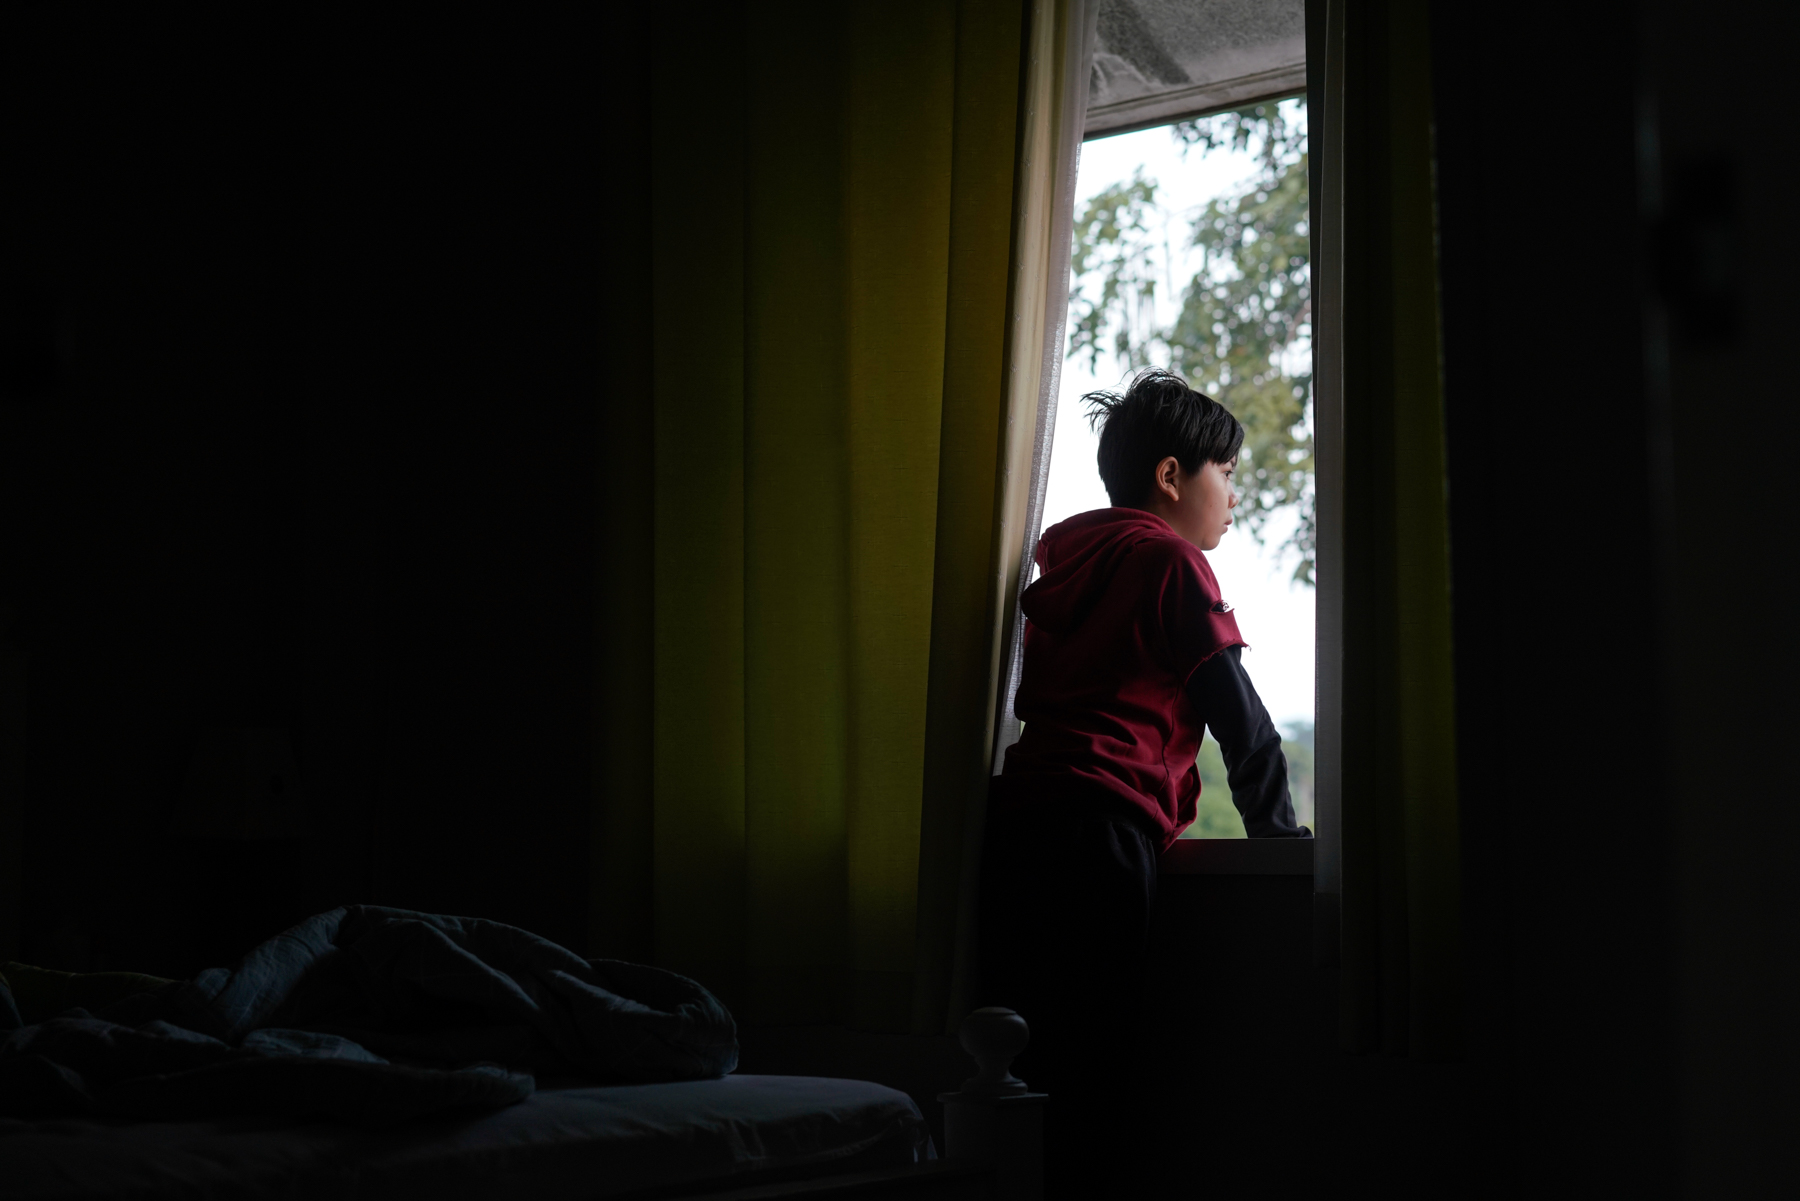 Before heading to school in the morning, Zou Yanhu listens to birds chirping outside his window, something he says he couldn't experience back home in Chengdu, January 18, 2019.